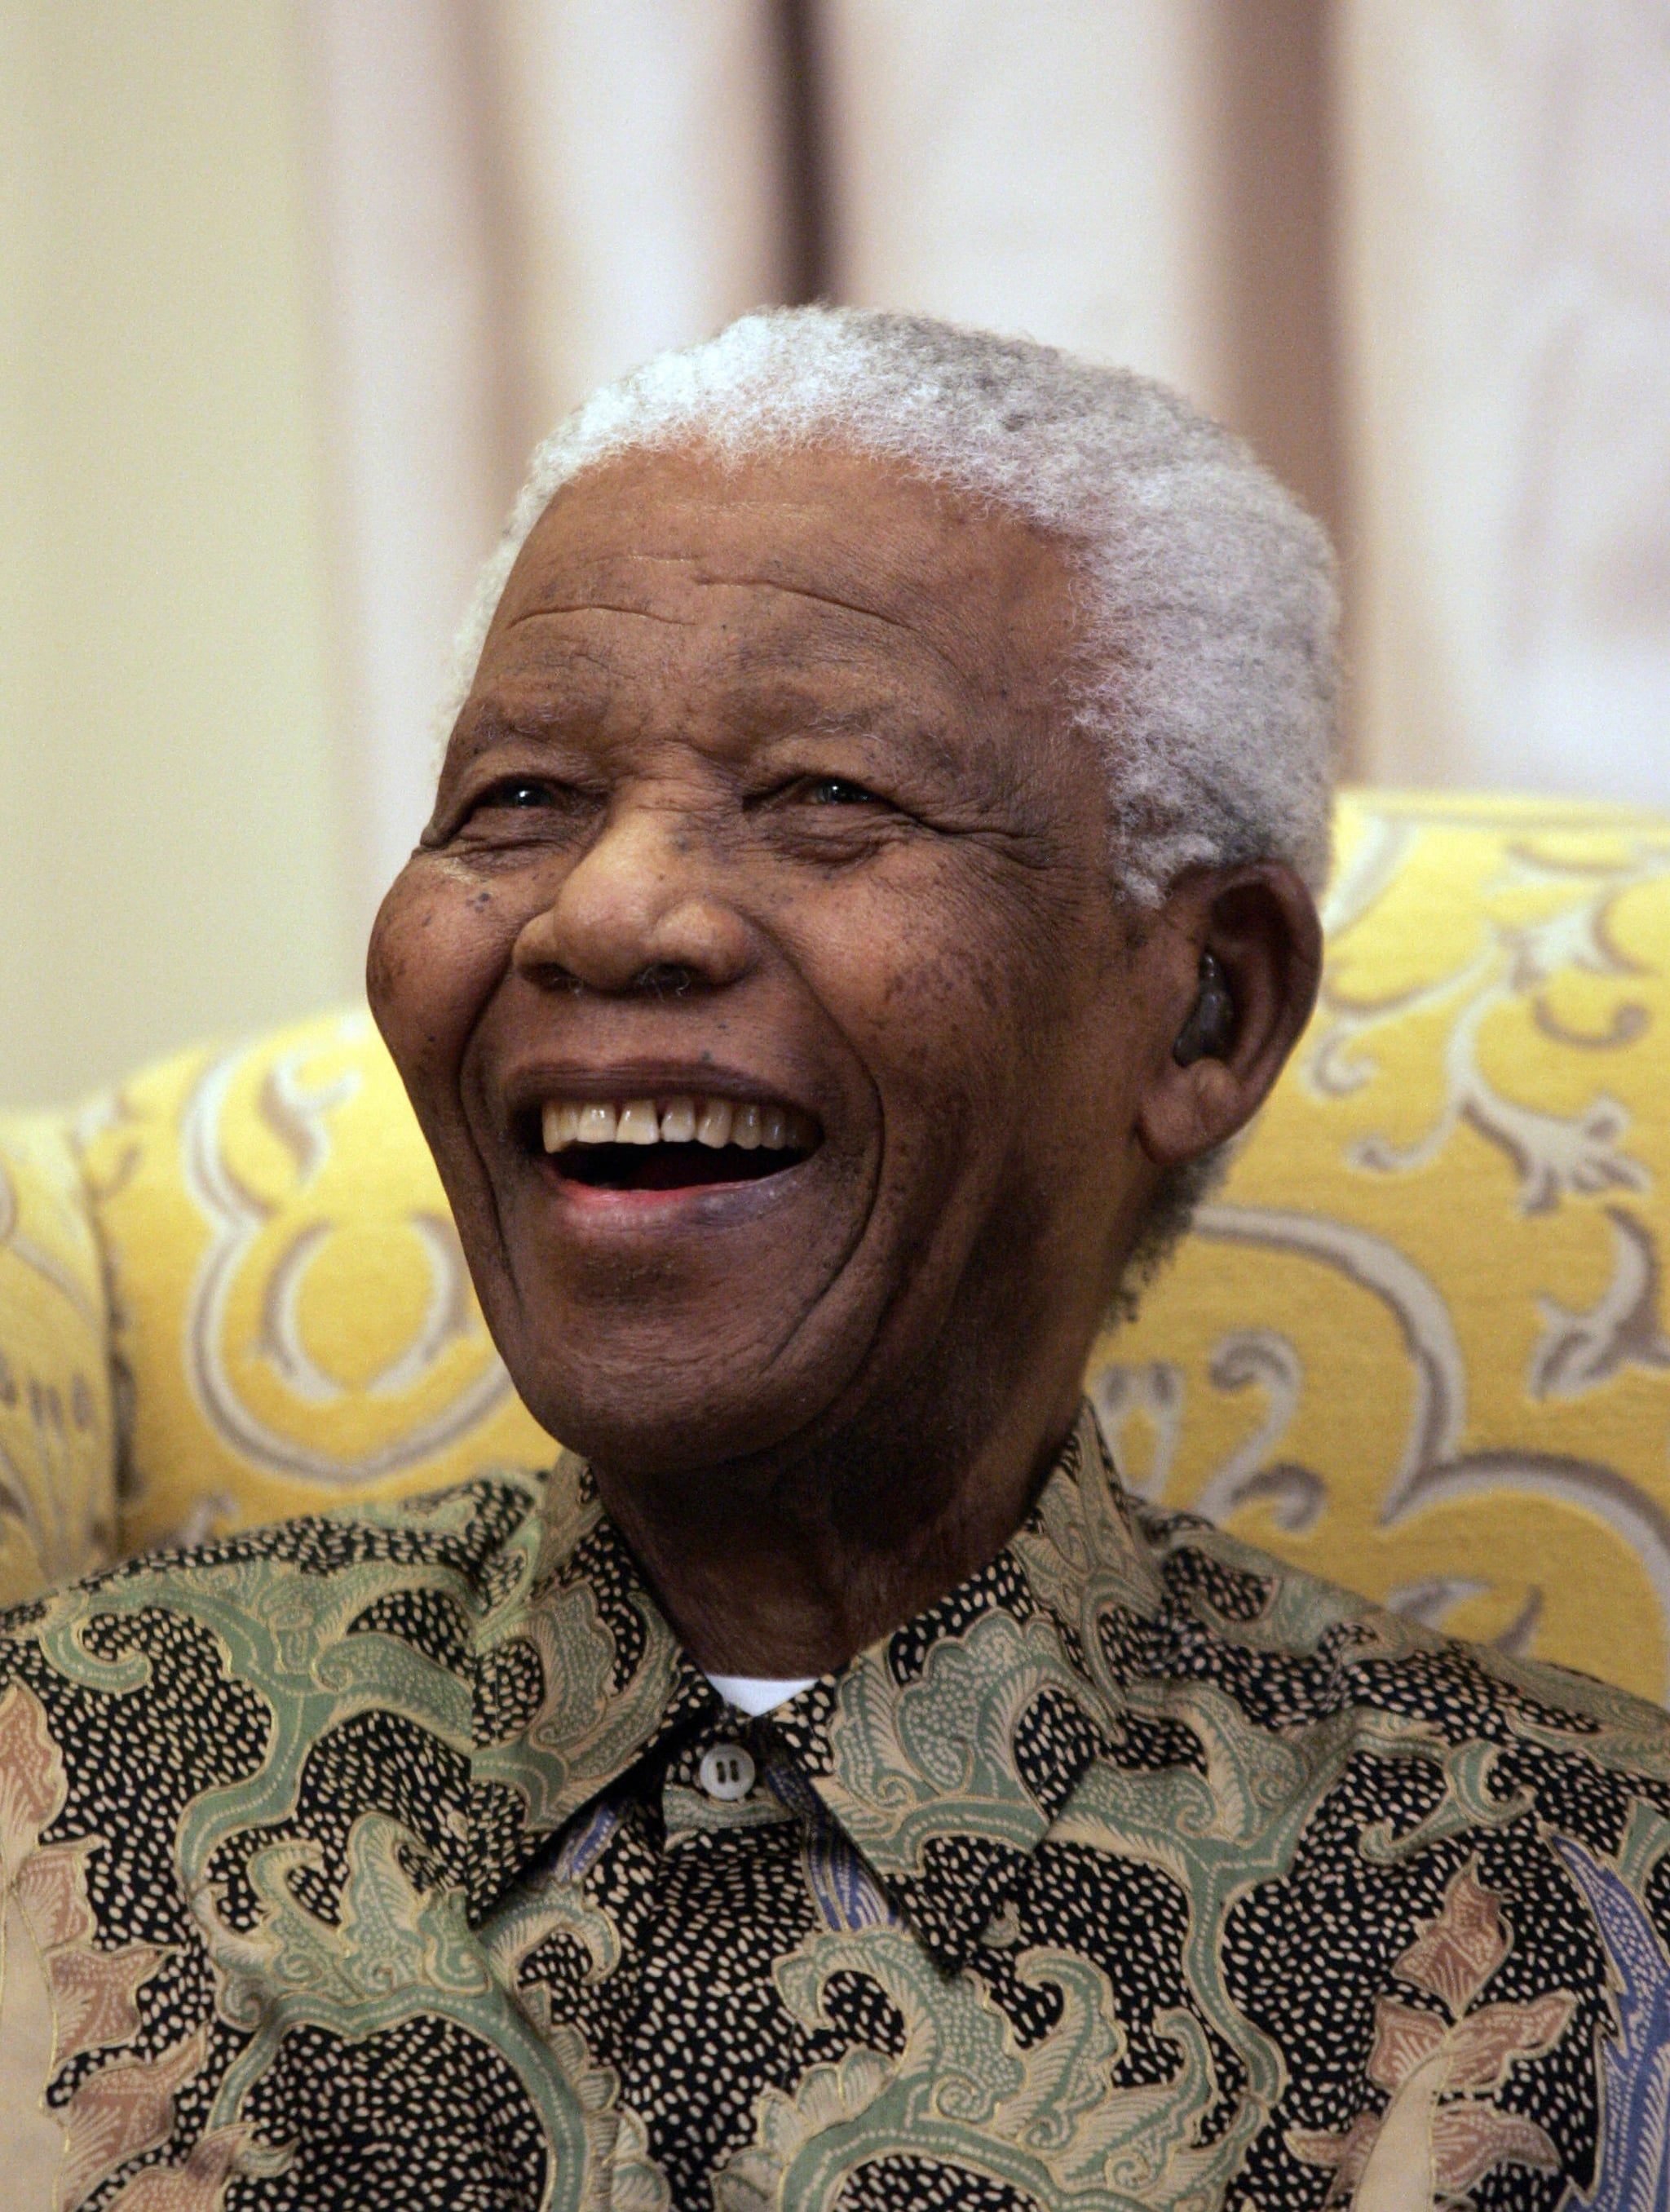 """Nelson Mandela told Larry King in 2000 what he wants the world to think of him: """"That must be left to future generations, because what happens today may not be shared by future generations. So, it's better for us to leave it to others to charge the role which one has played."""""""